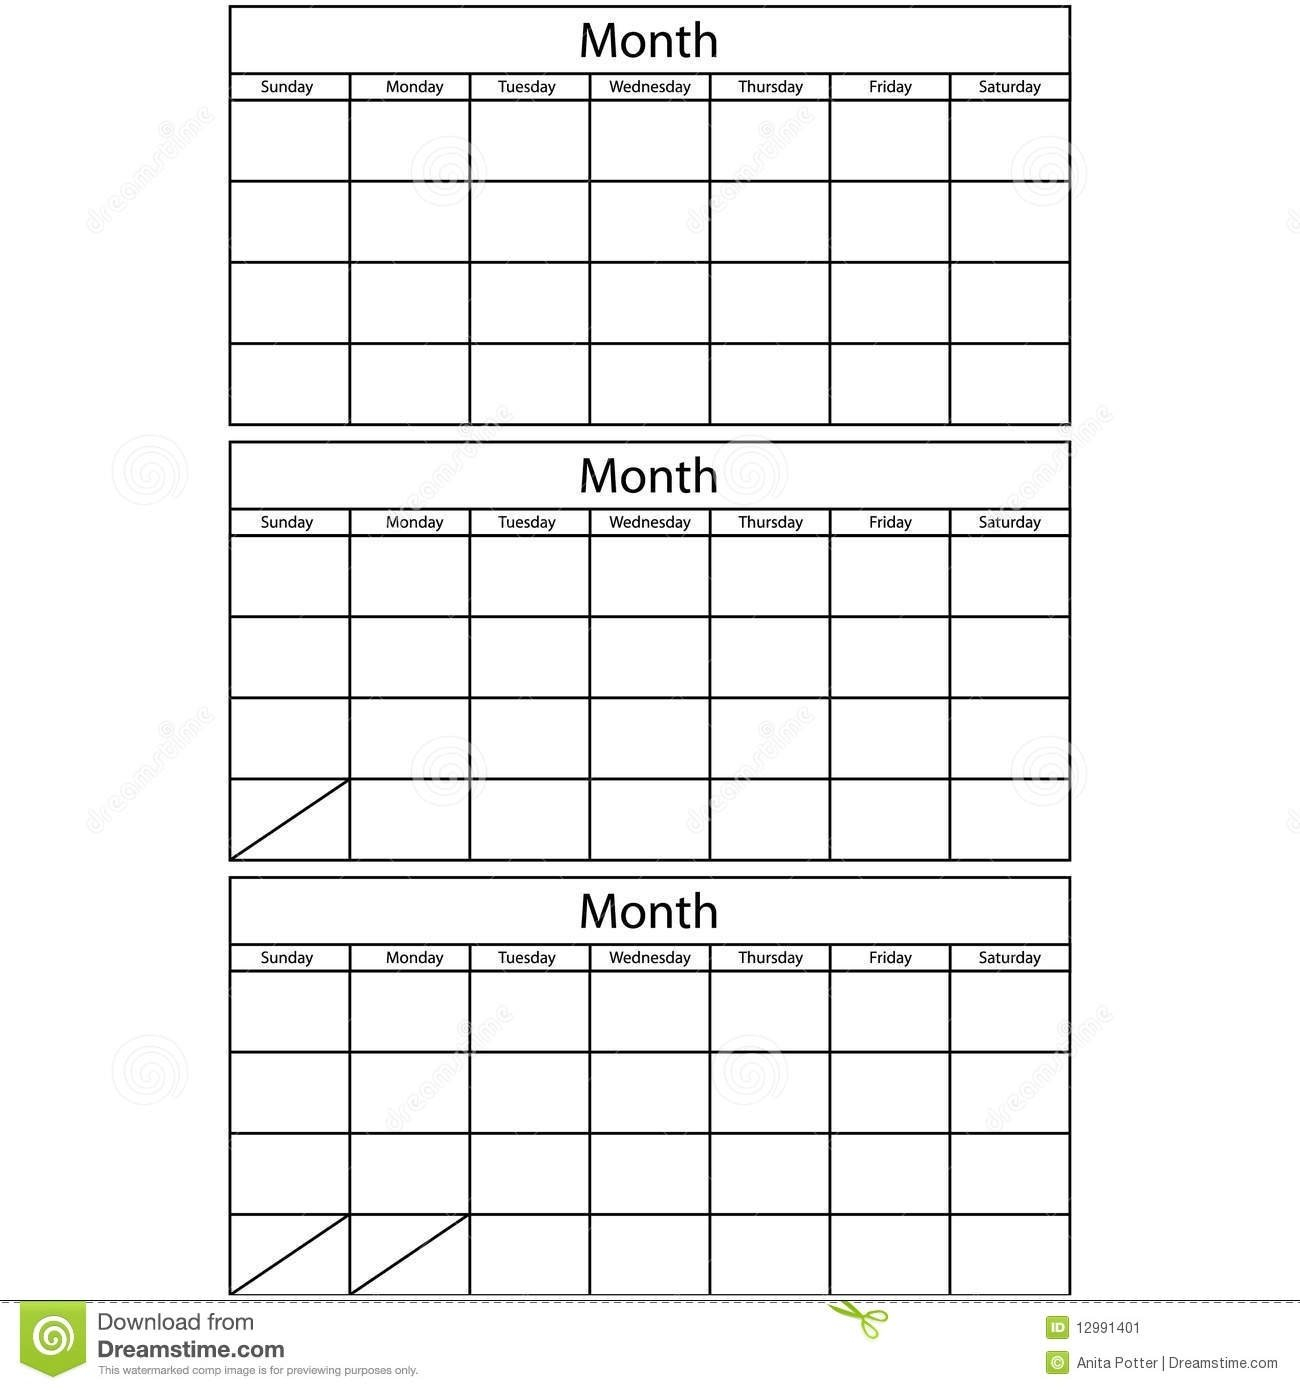 1 Year Depo-Provera Dosing Calendar - Calendar Inspiration 3 Month Injection Schedule Depo Healthpac